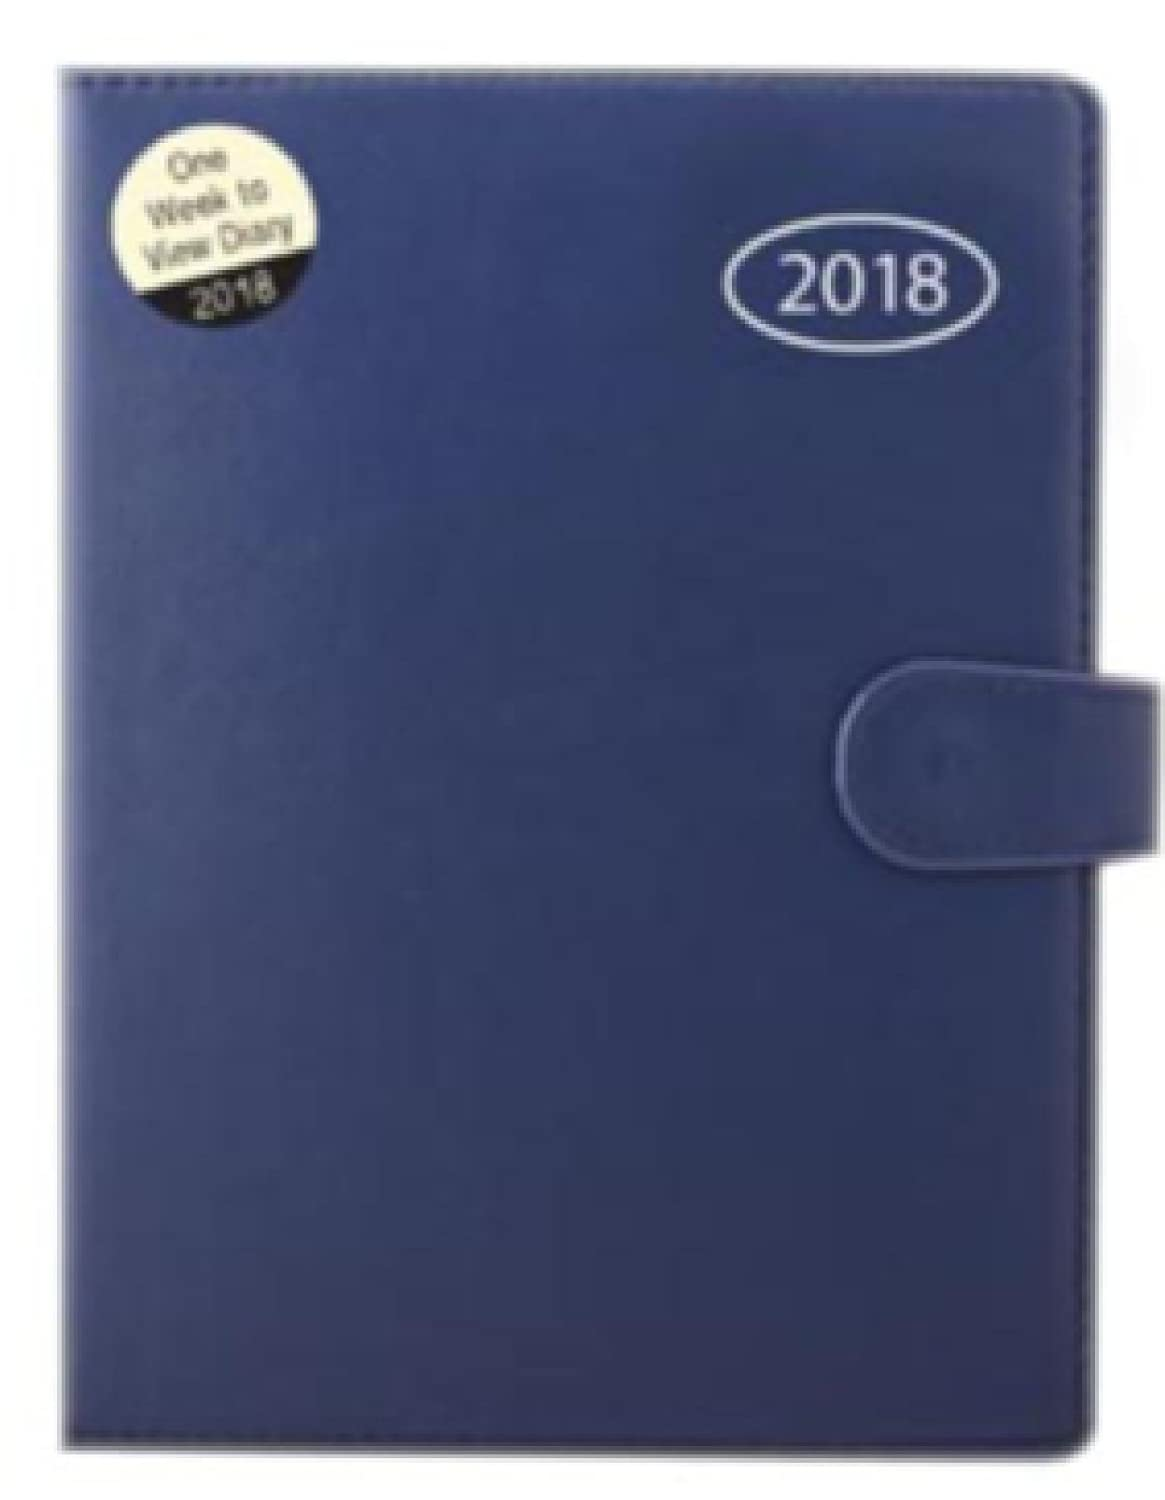 2018 A5 Week to View Diary Personal organiser with address book and pen 2077 (Blue-2077) JMS Photos